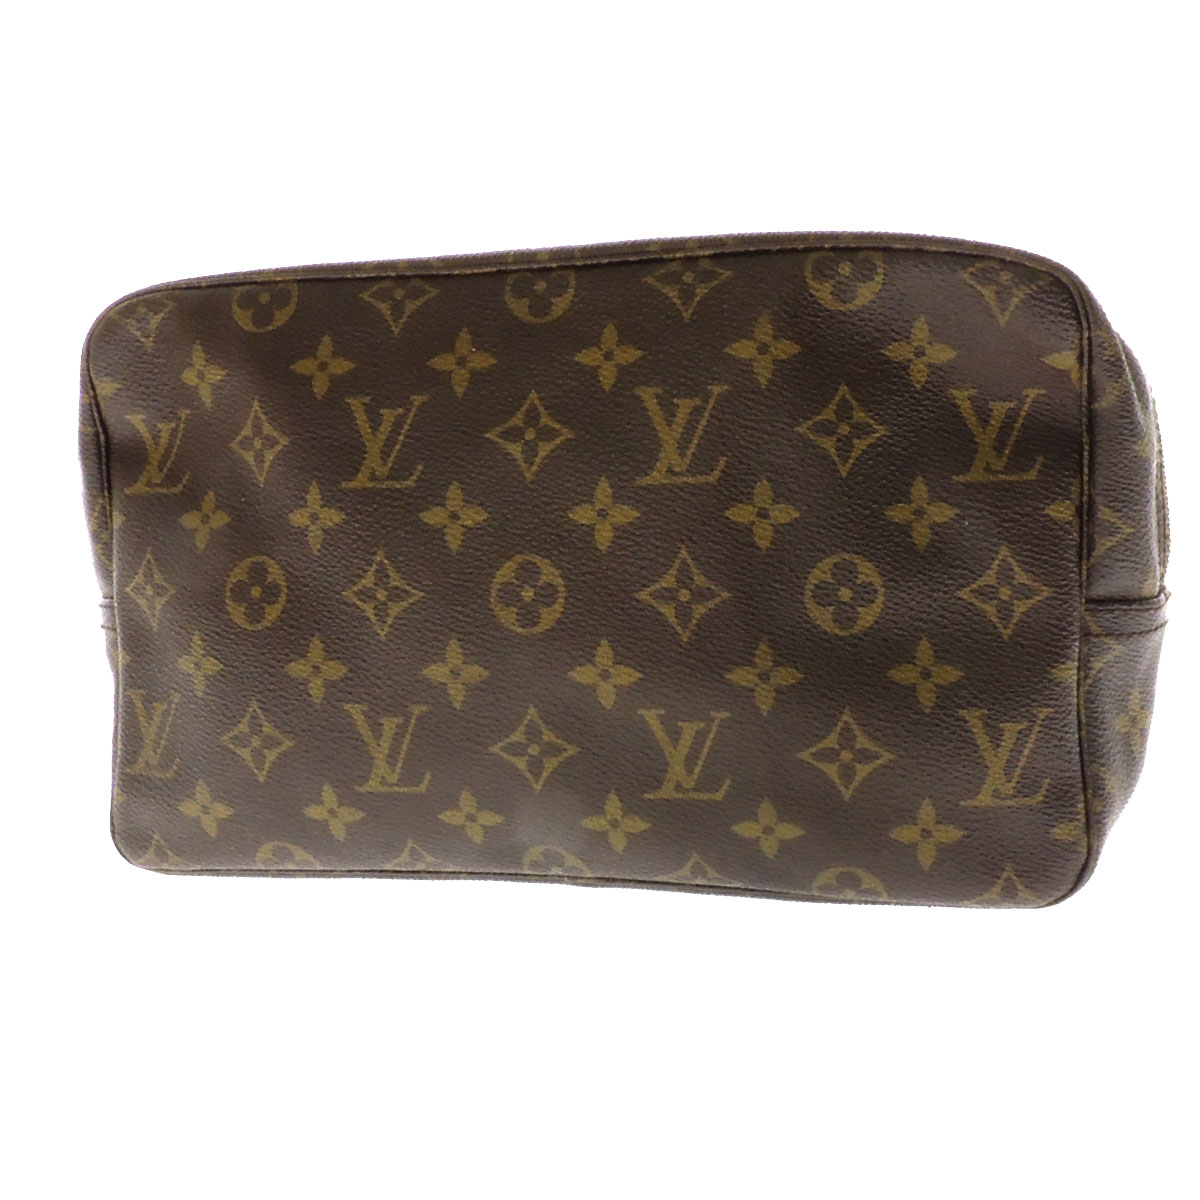 LOUIS VUITTON truest wallet 28 M 47522 makeup pouch Monogram Canvas ladies